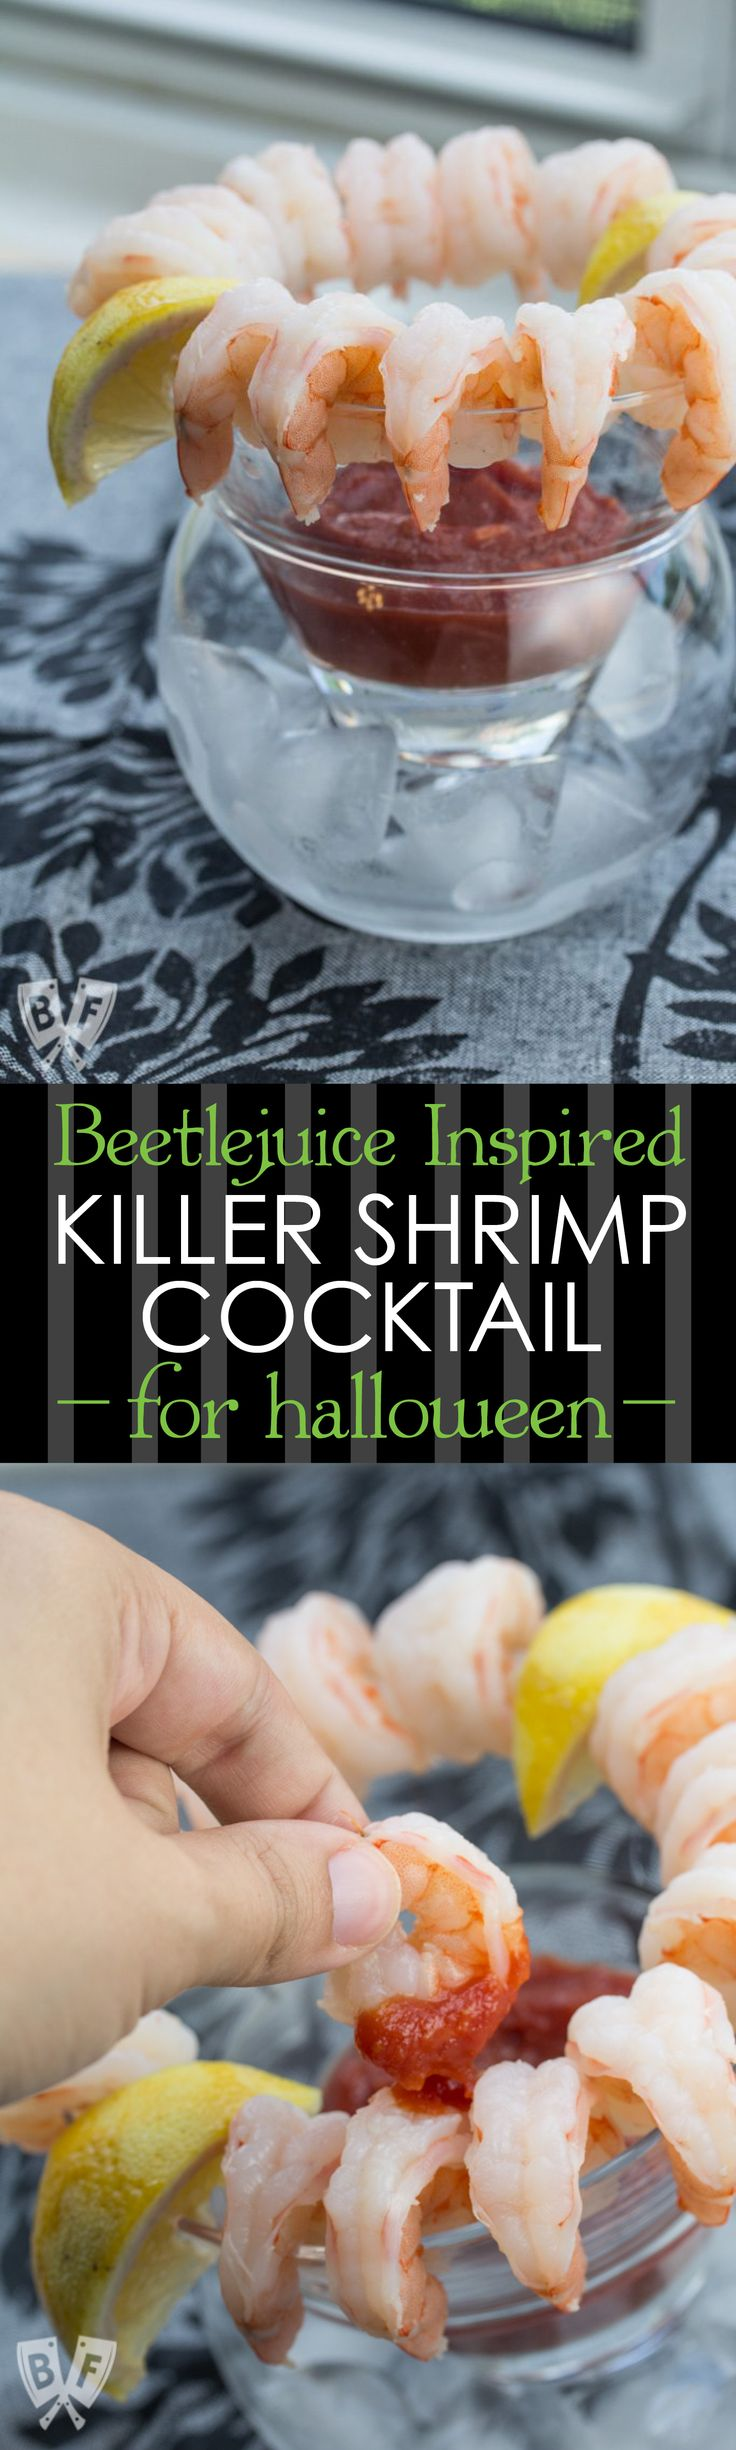 Killer Shrimp Cocktail: A flavorful shrimp boil and homemade cocktail sauce bring this Beetlejuice-inspired appetizer to life! Perfect for dinner parties and Halloween festivities!